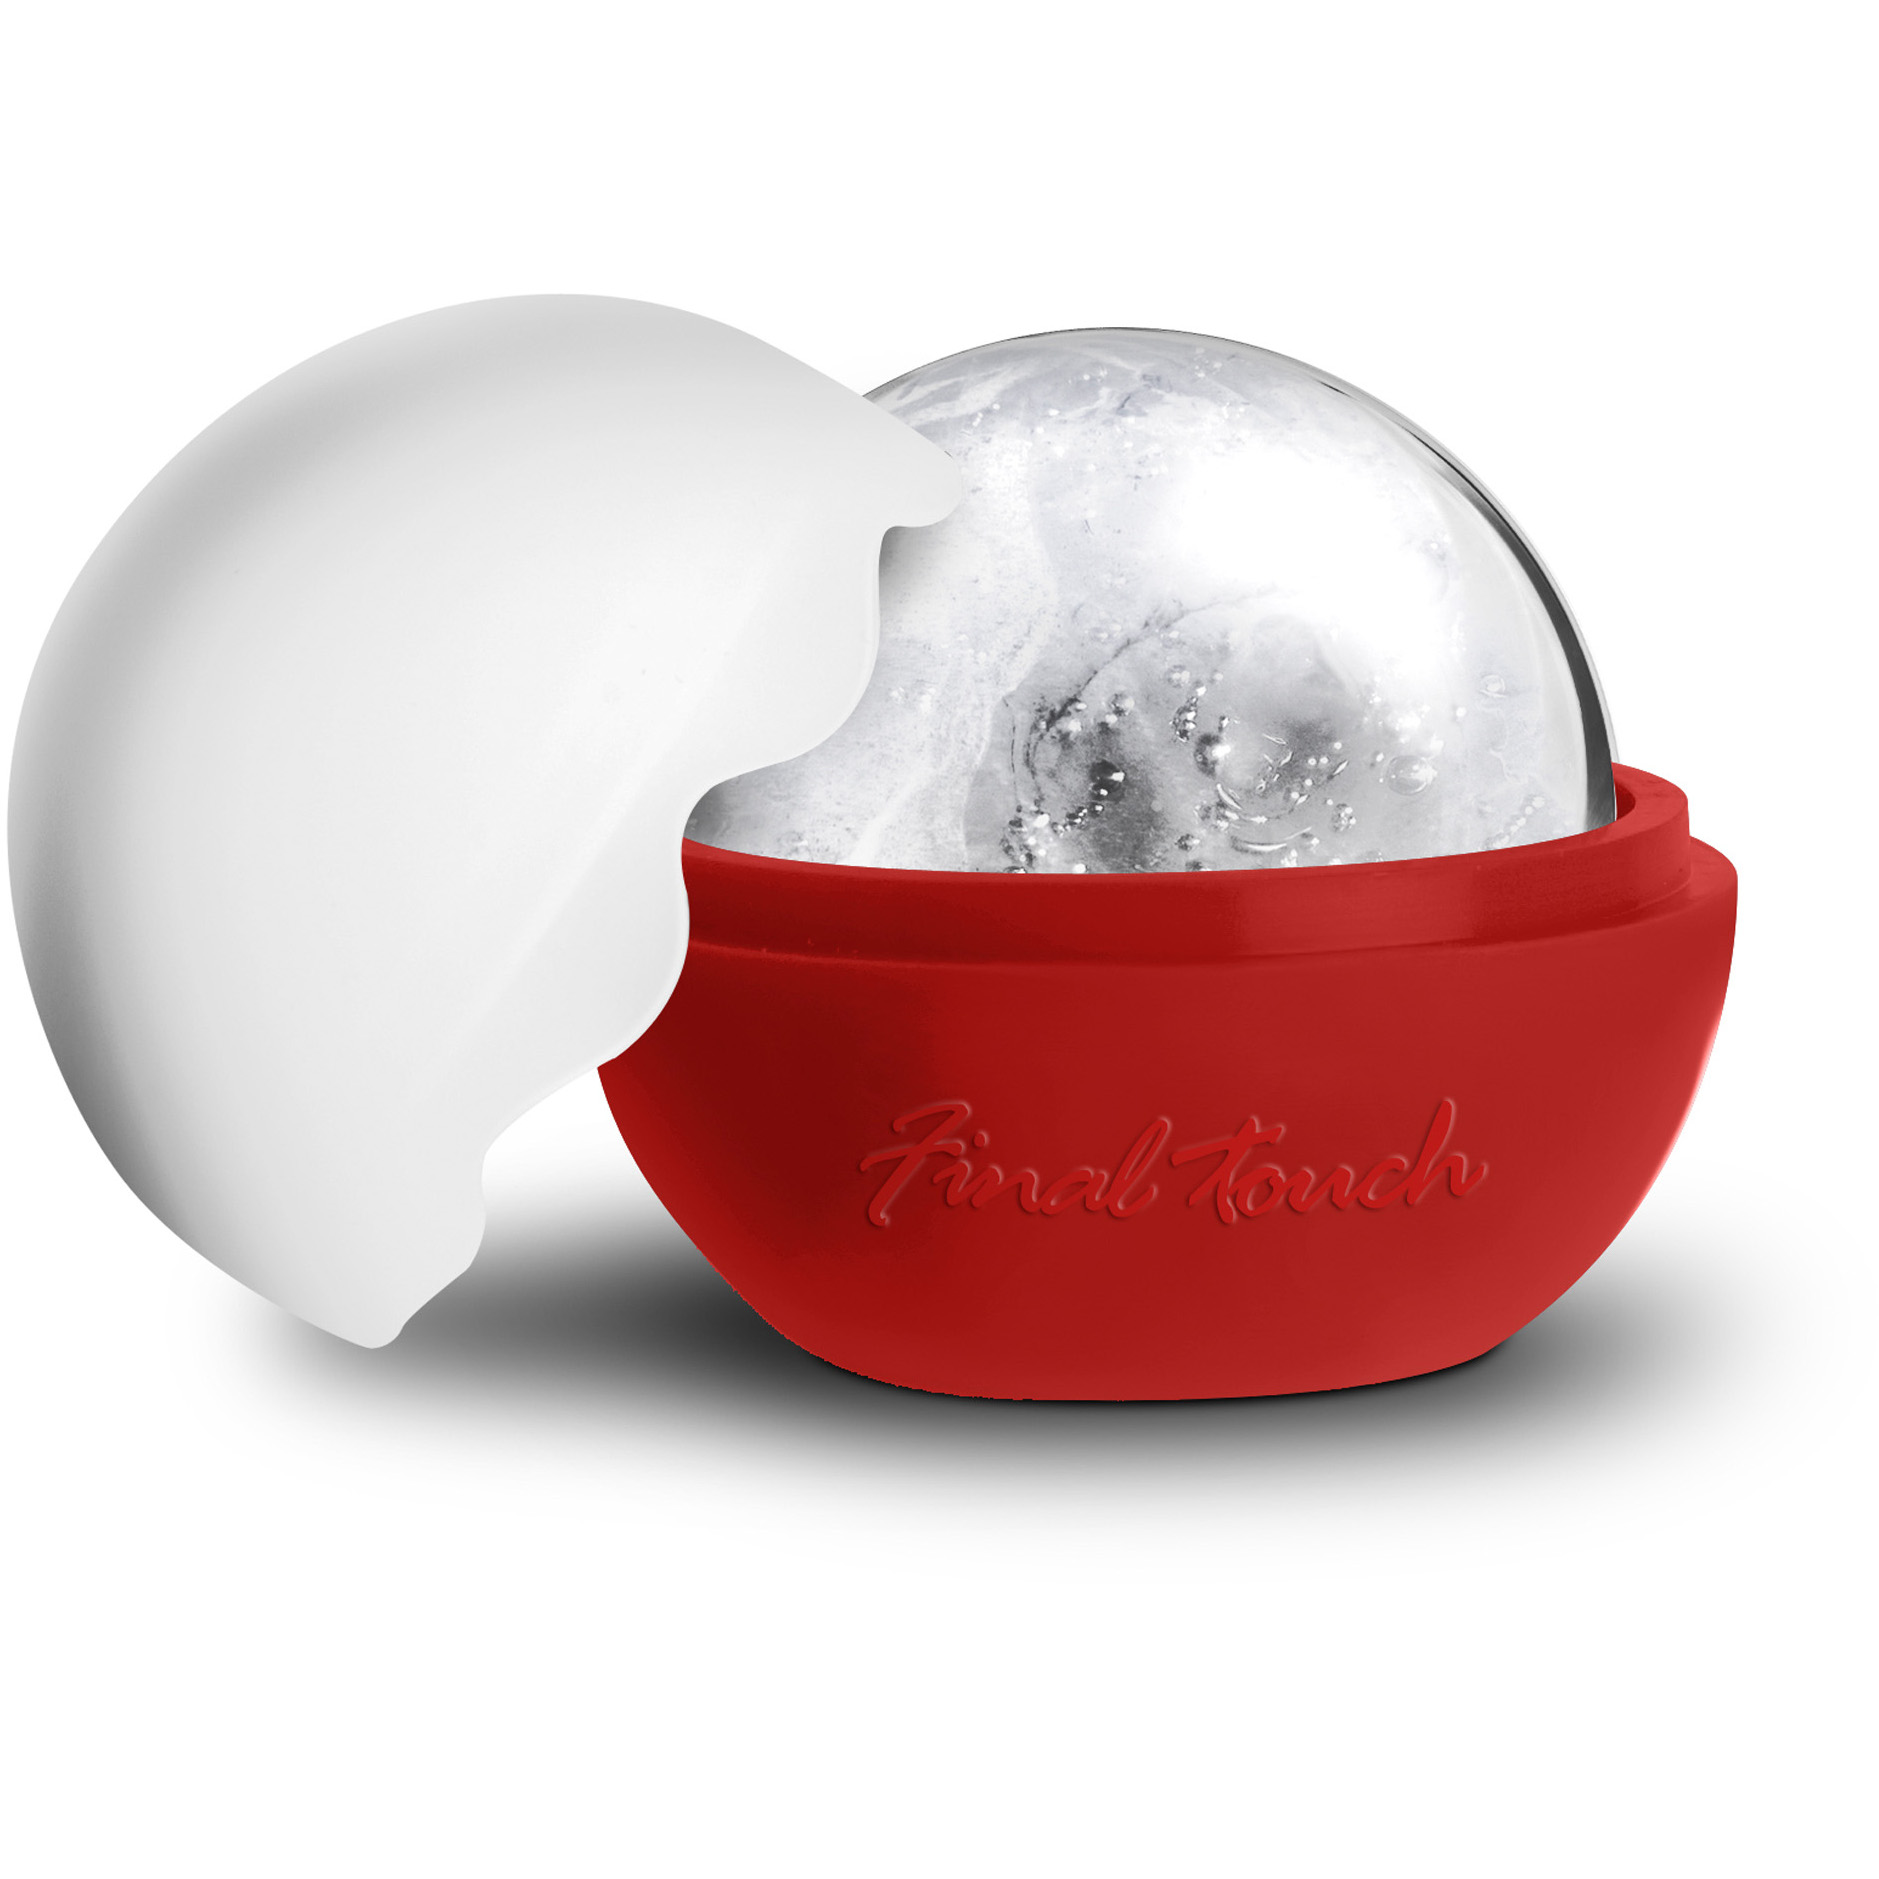 Final Touch IceBalls Silicone Ice Mold, Set of 4